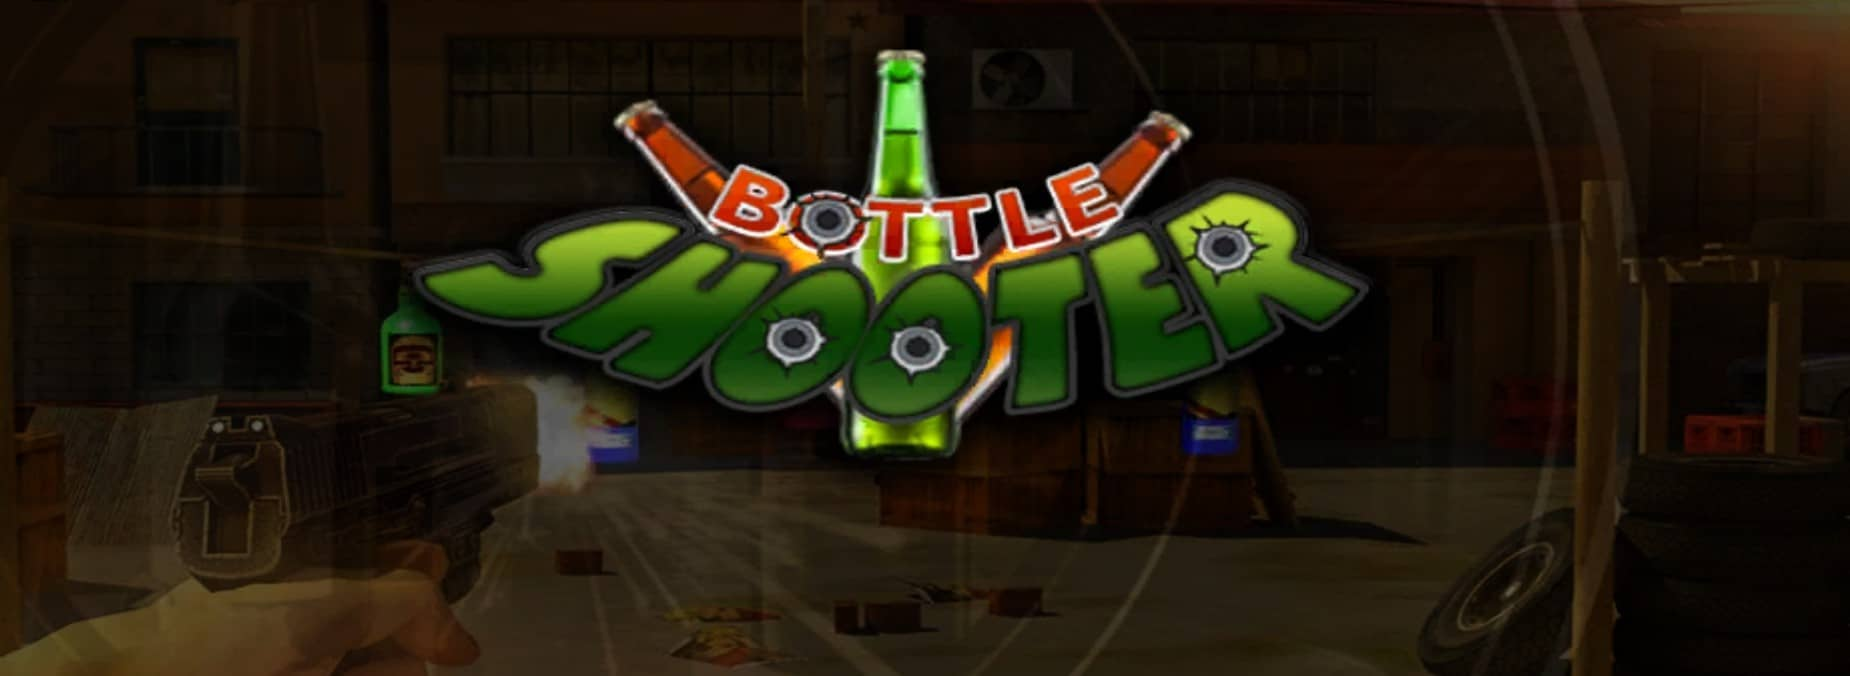 Download Real Bottle Shooter Game APK – for Android 9